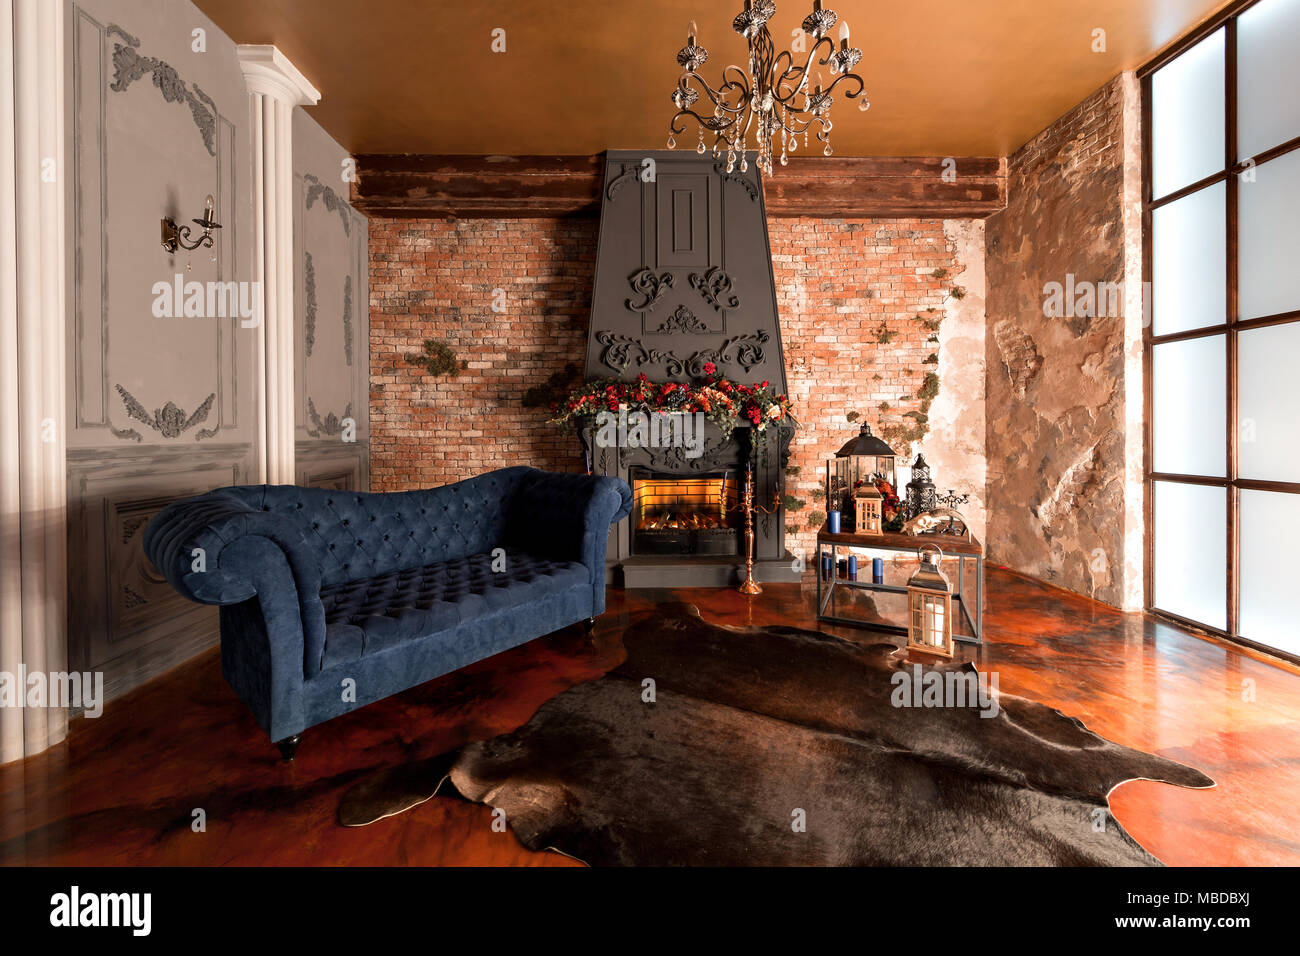 Brick Meubles Divan Lit Loft Style Interior With Fireplace Candles Skin Of Cows Brick